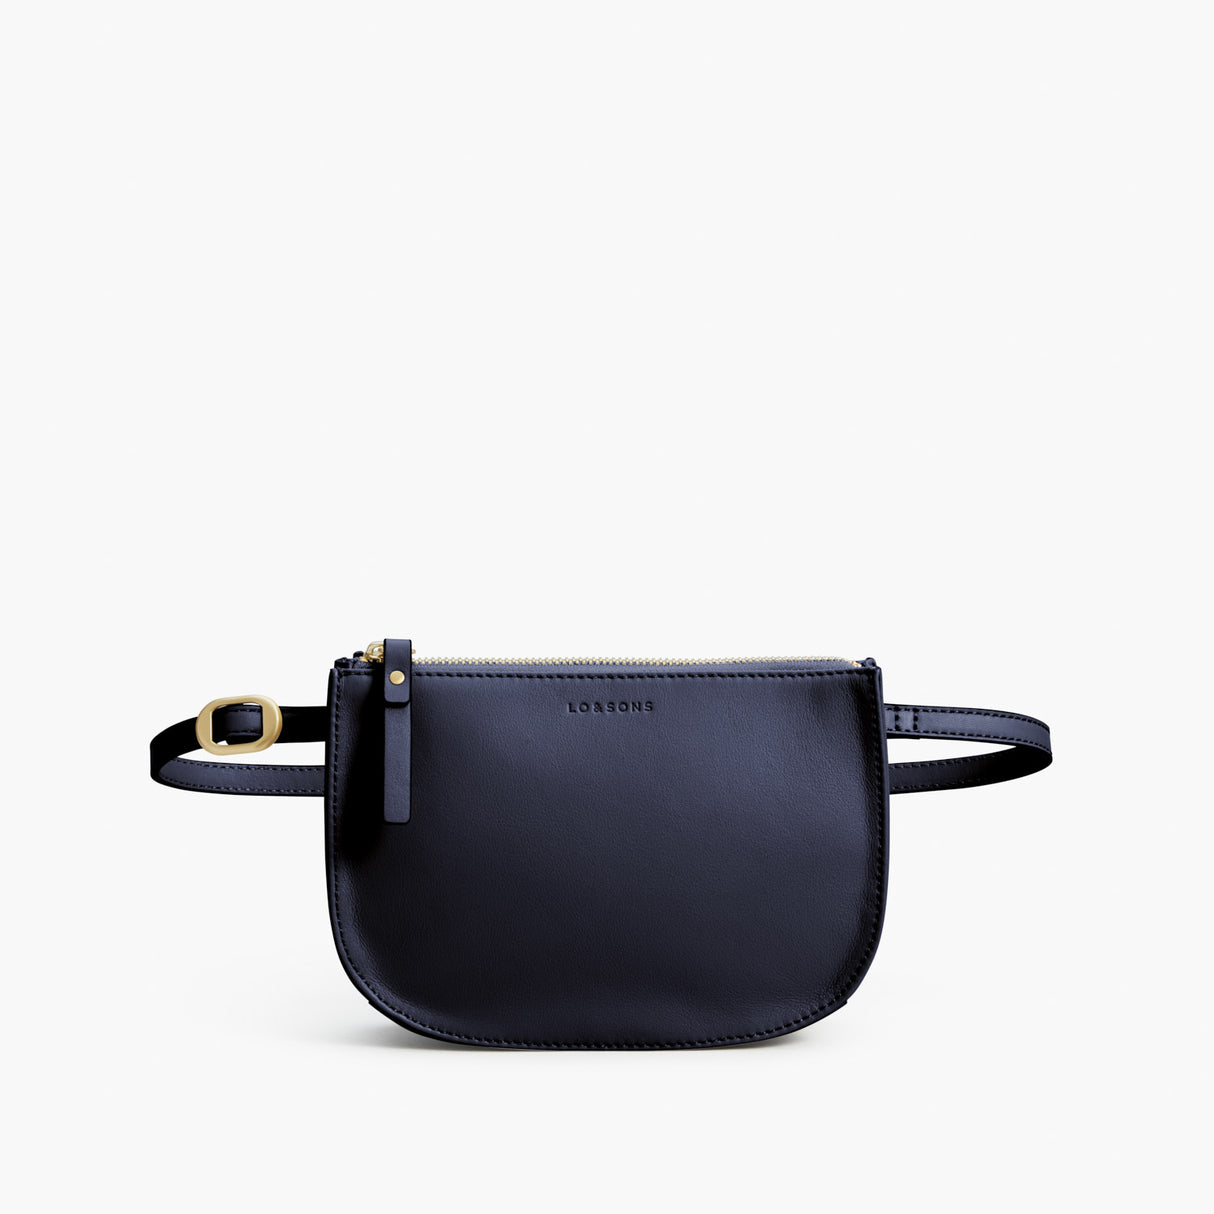 Front Crossbody - Waverley 2 - Nappa Leather - Deep Navy / Gold / Camel - Crossbody Bag - Lo & Sons